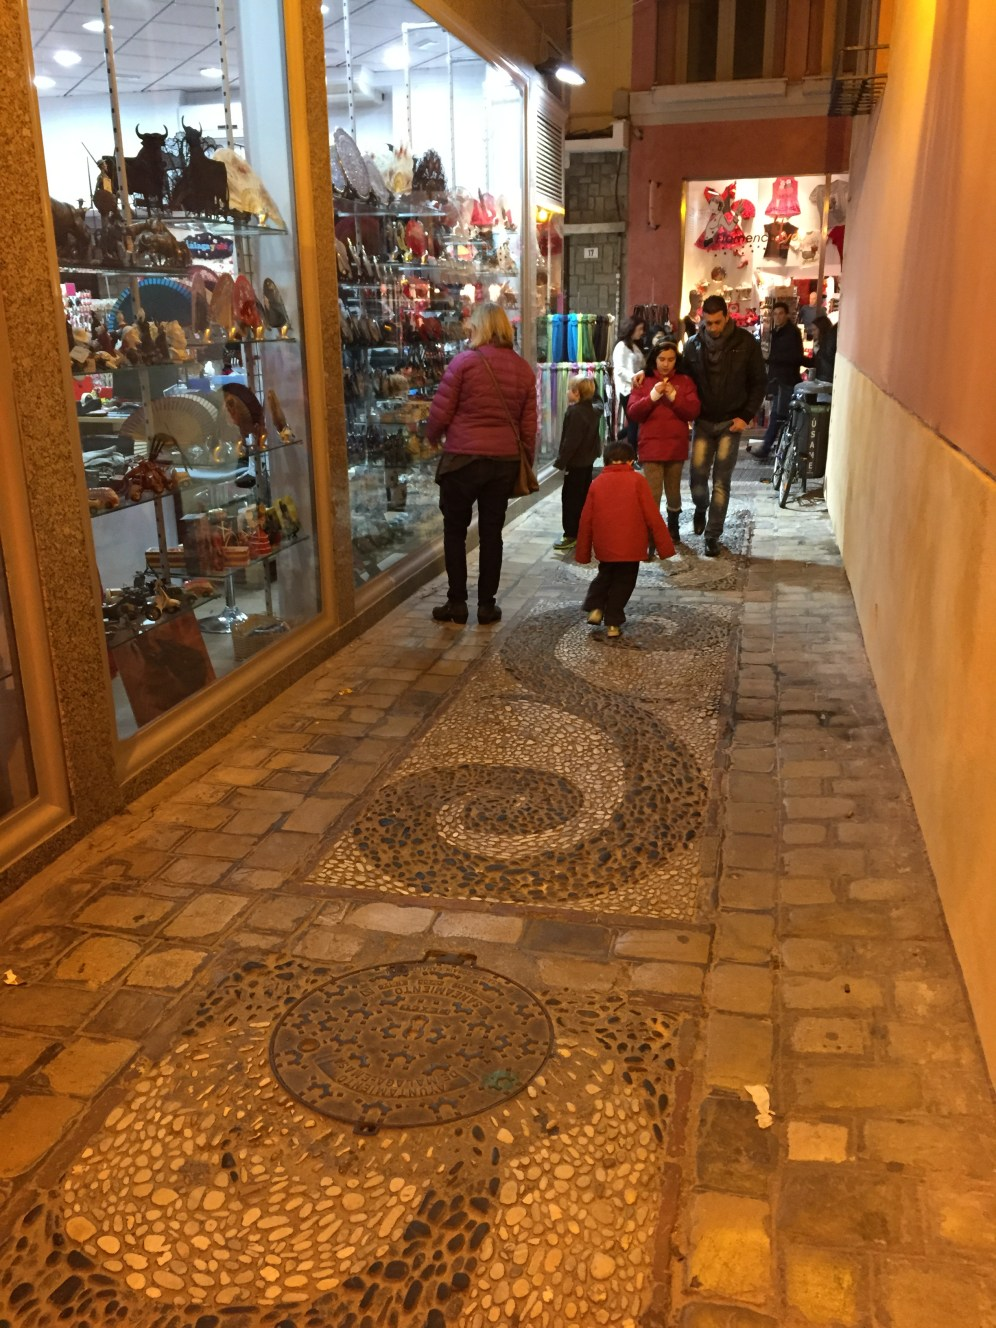 Love the cobblestone streets and mosaics!